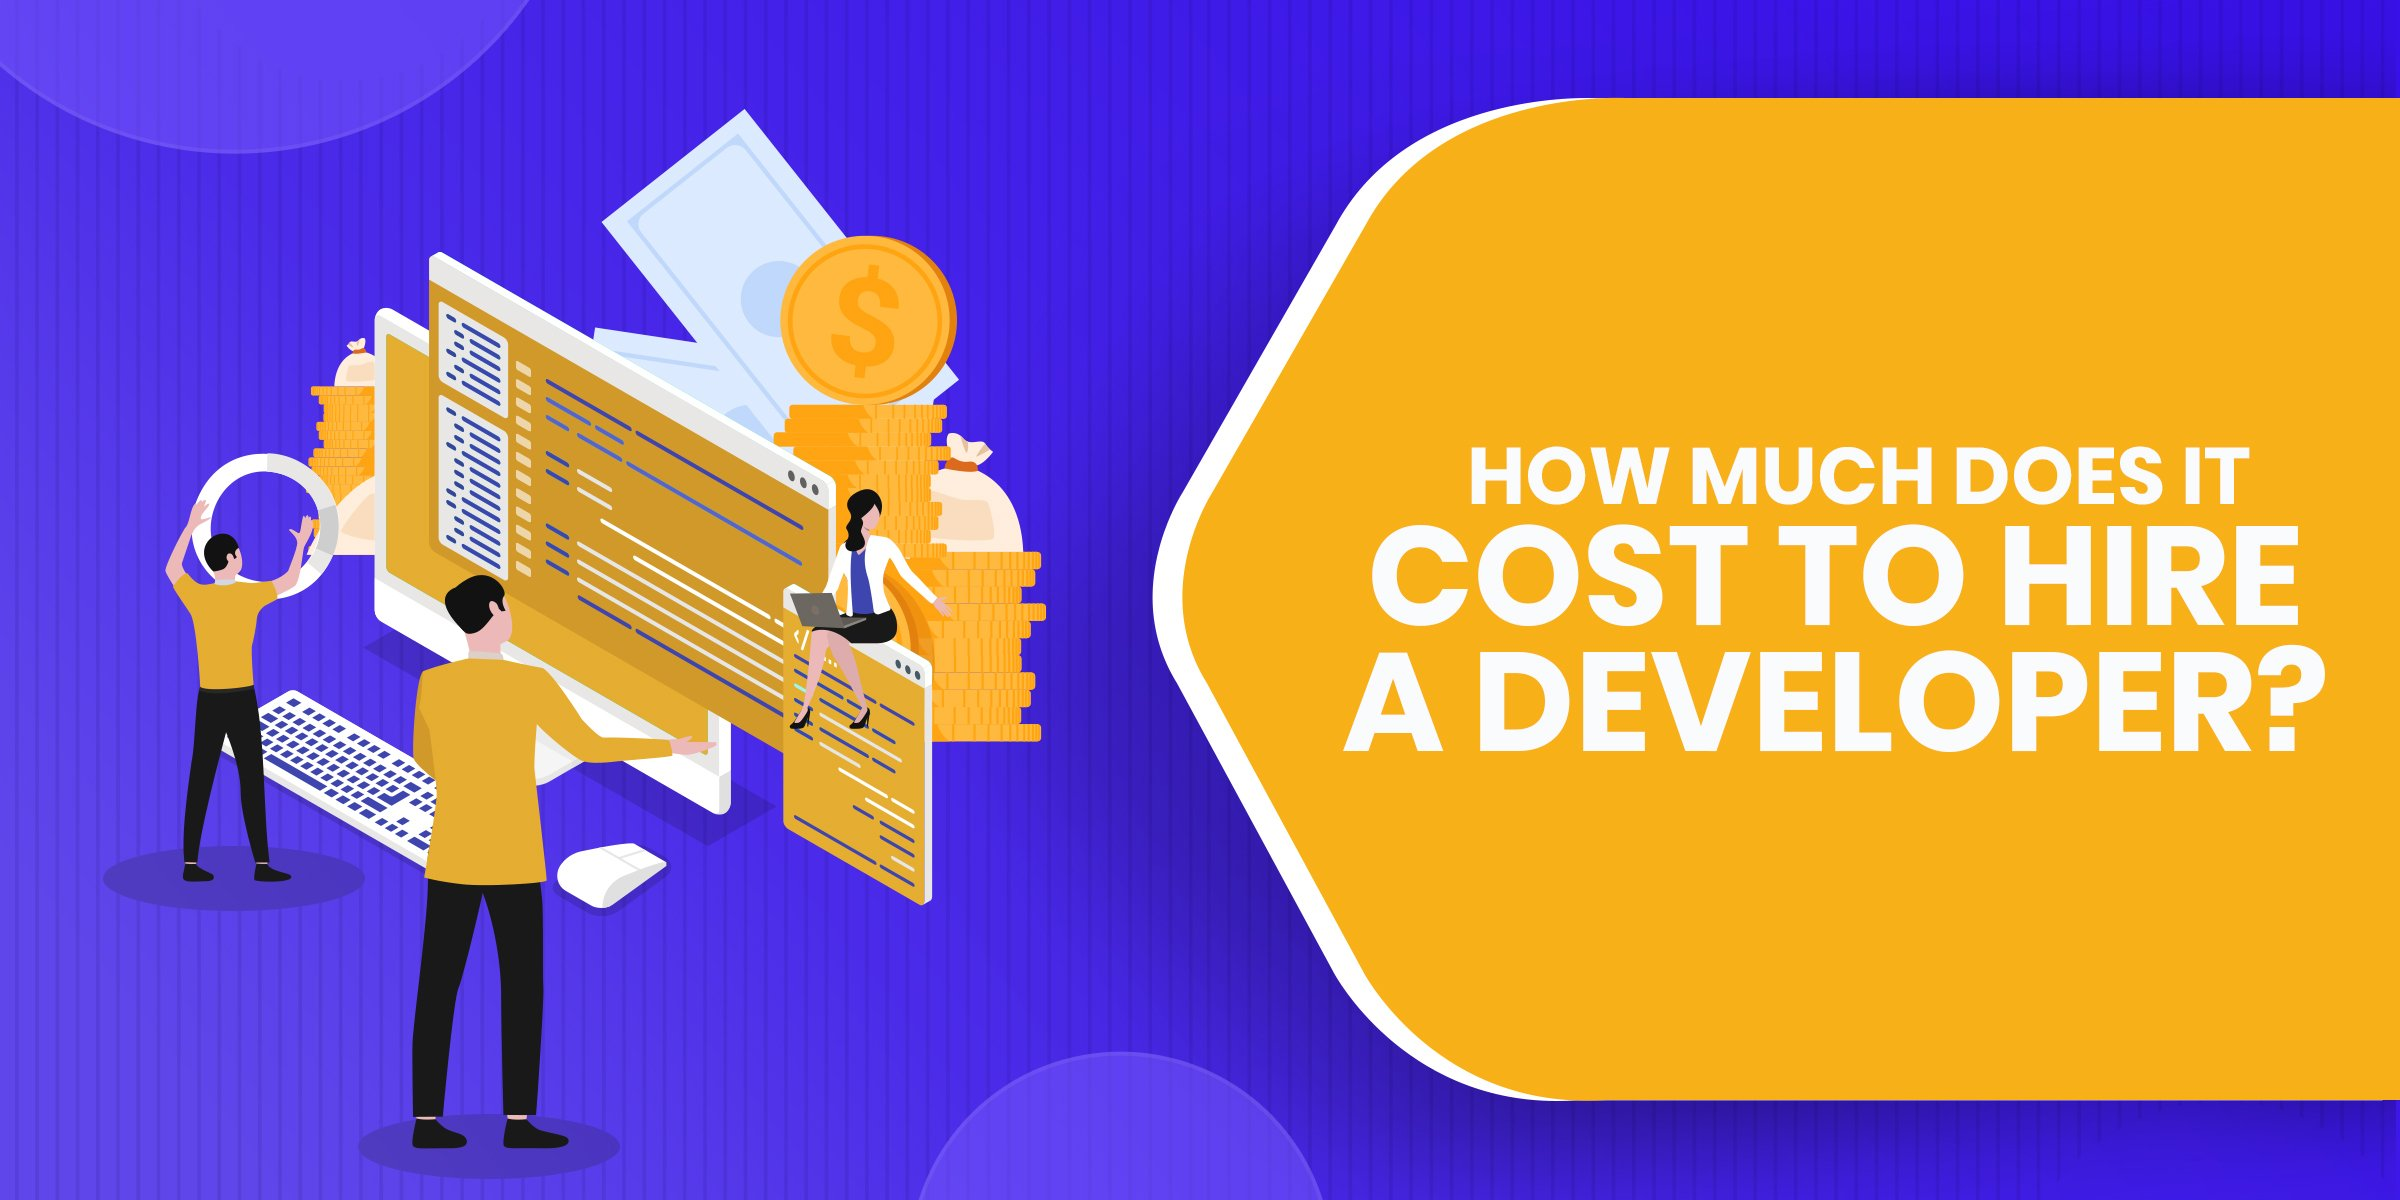 How Much Does it Cost to Hire a Developer?